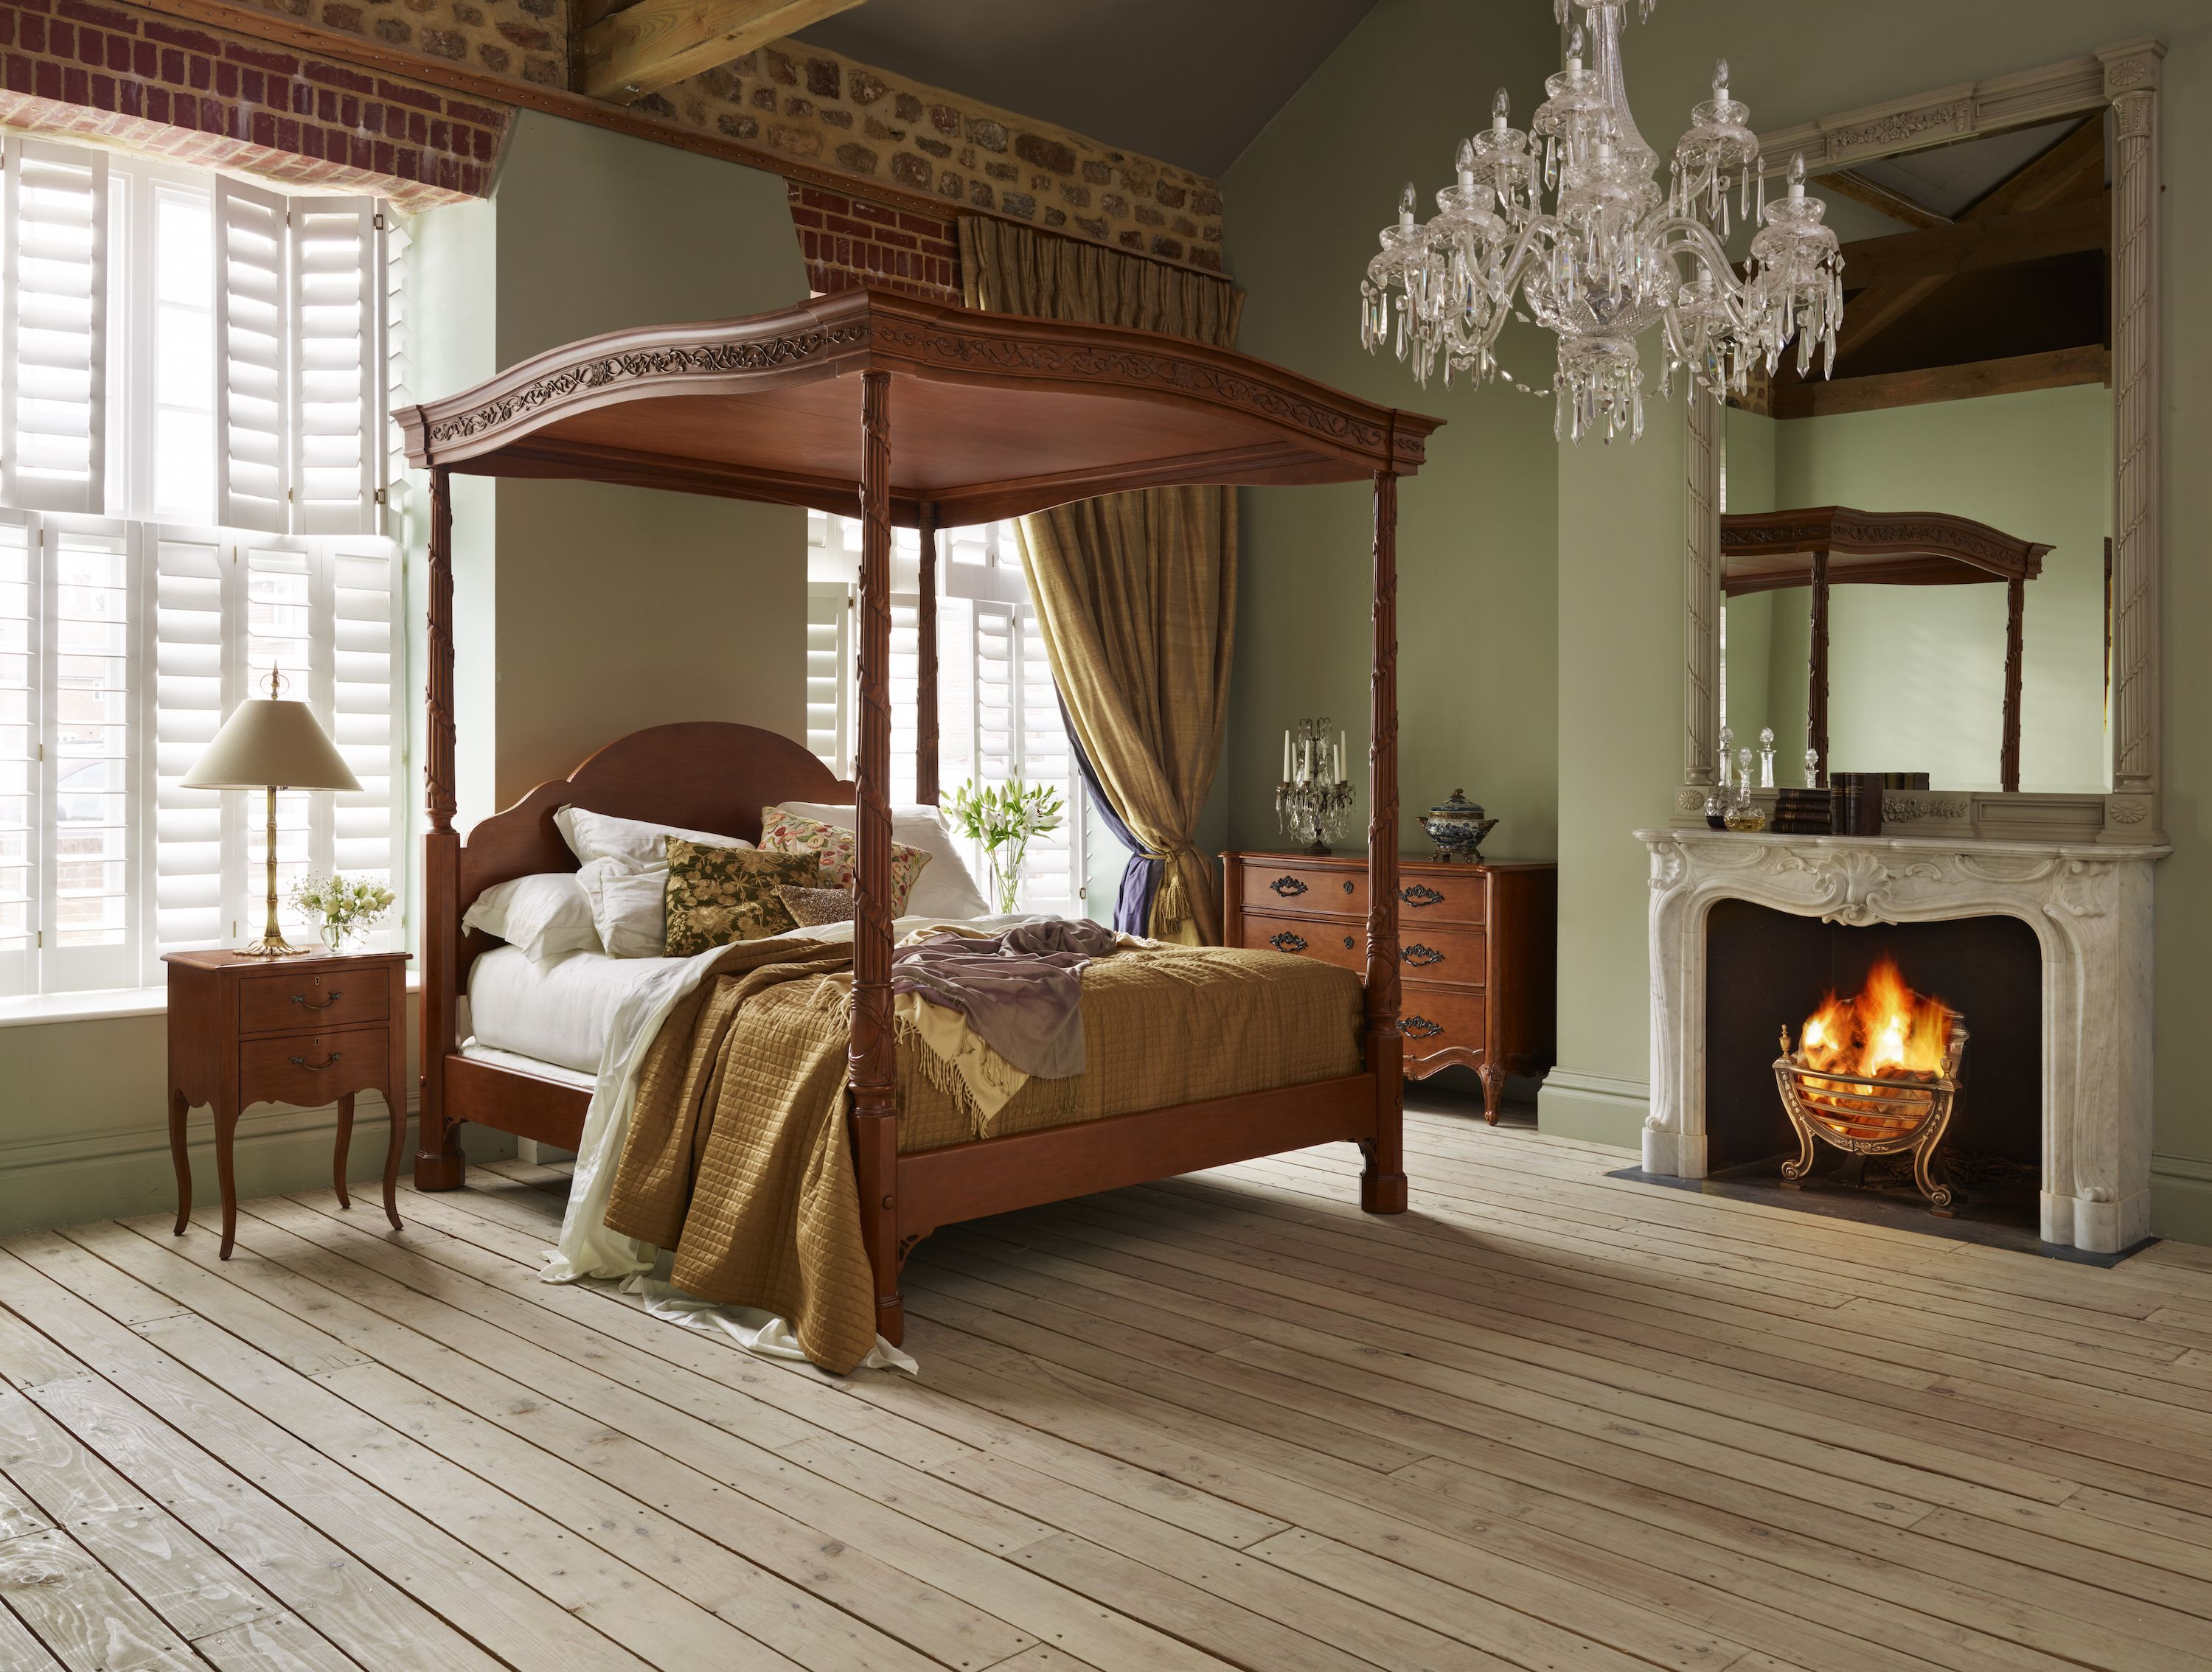 Luxury Poster Beds the ribbons four poster bed from and so to bed | london. luxury